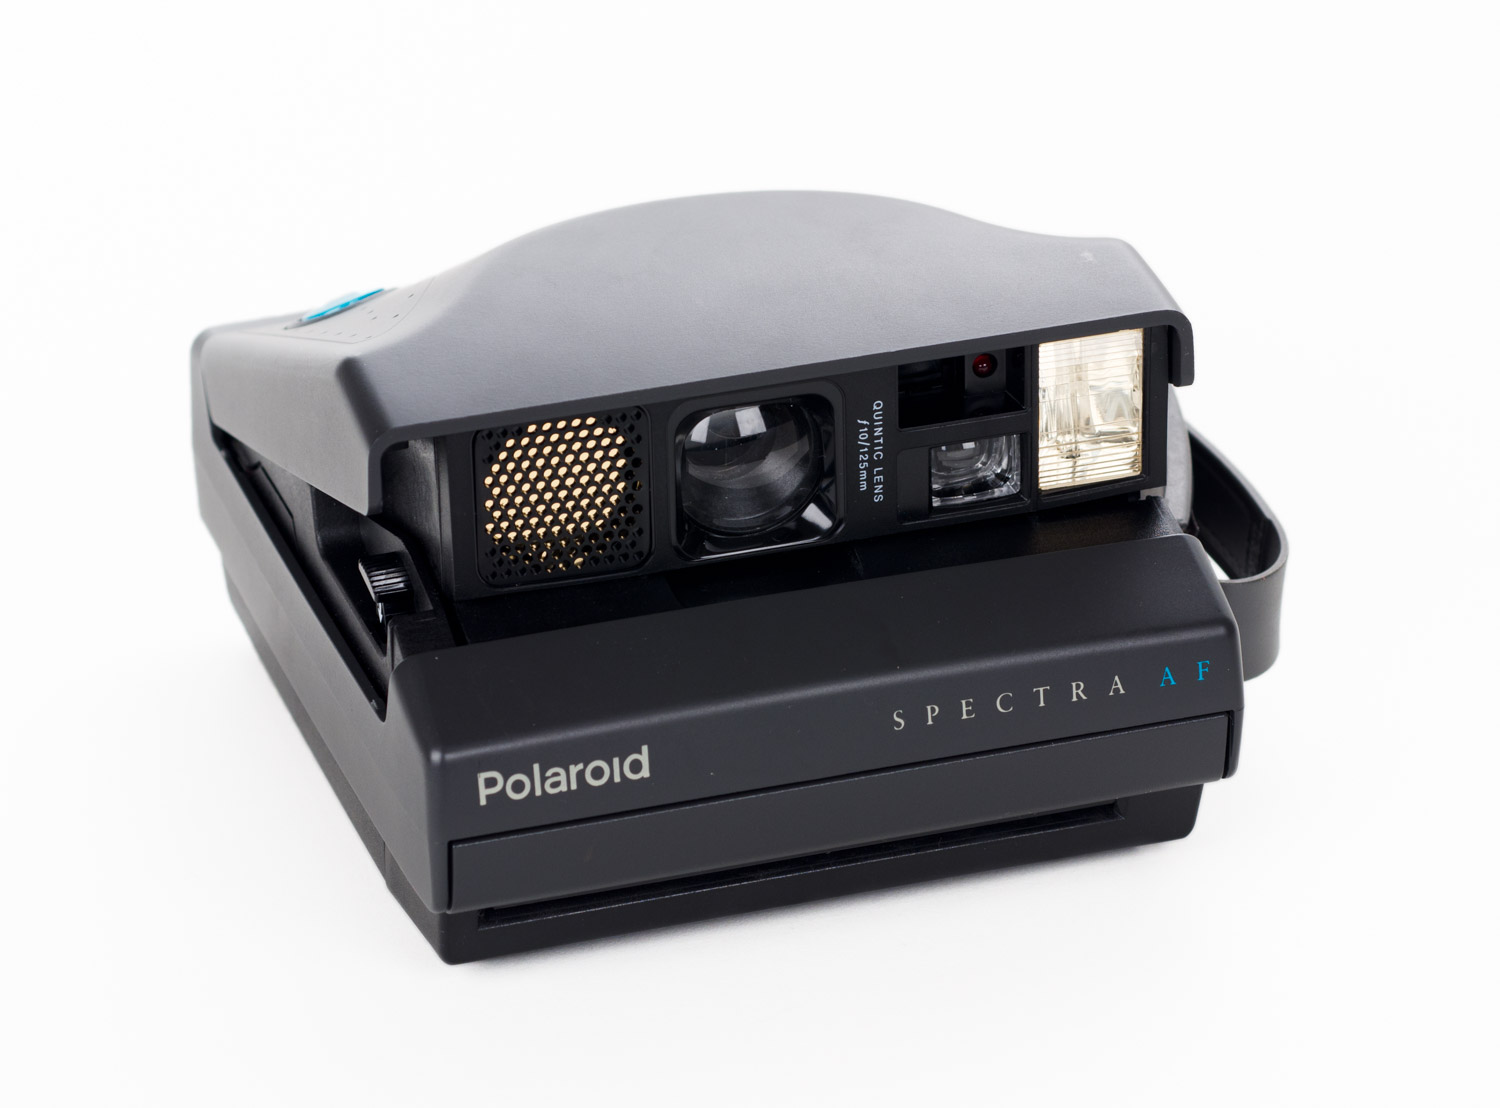 The Spectra AF is an example of a Polaroid camera with sonar autofocus, a very handy feature.